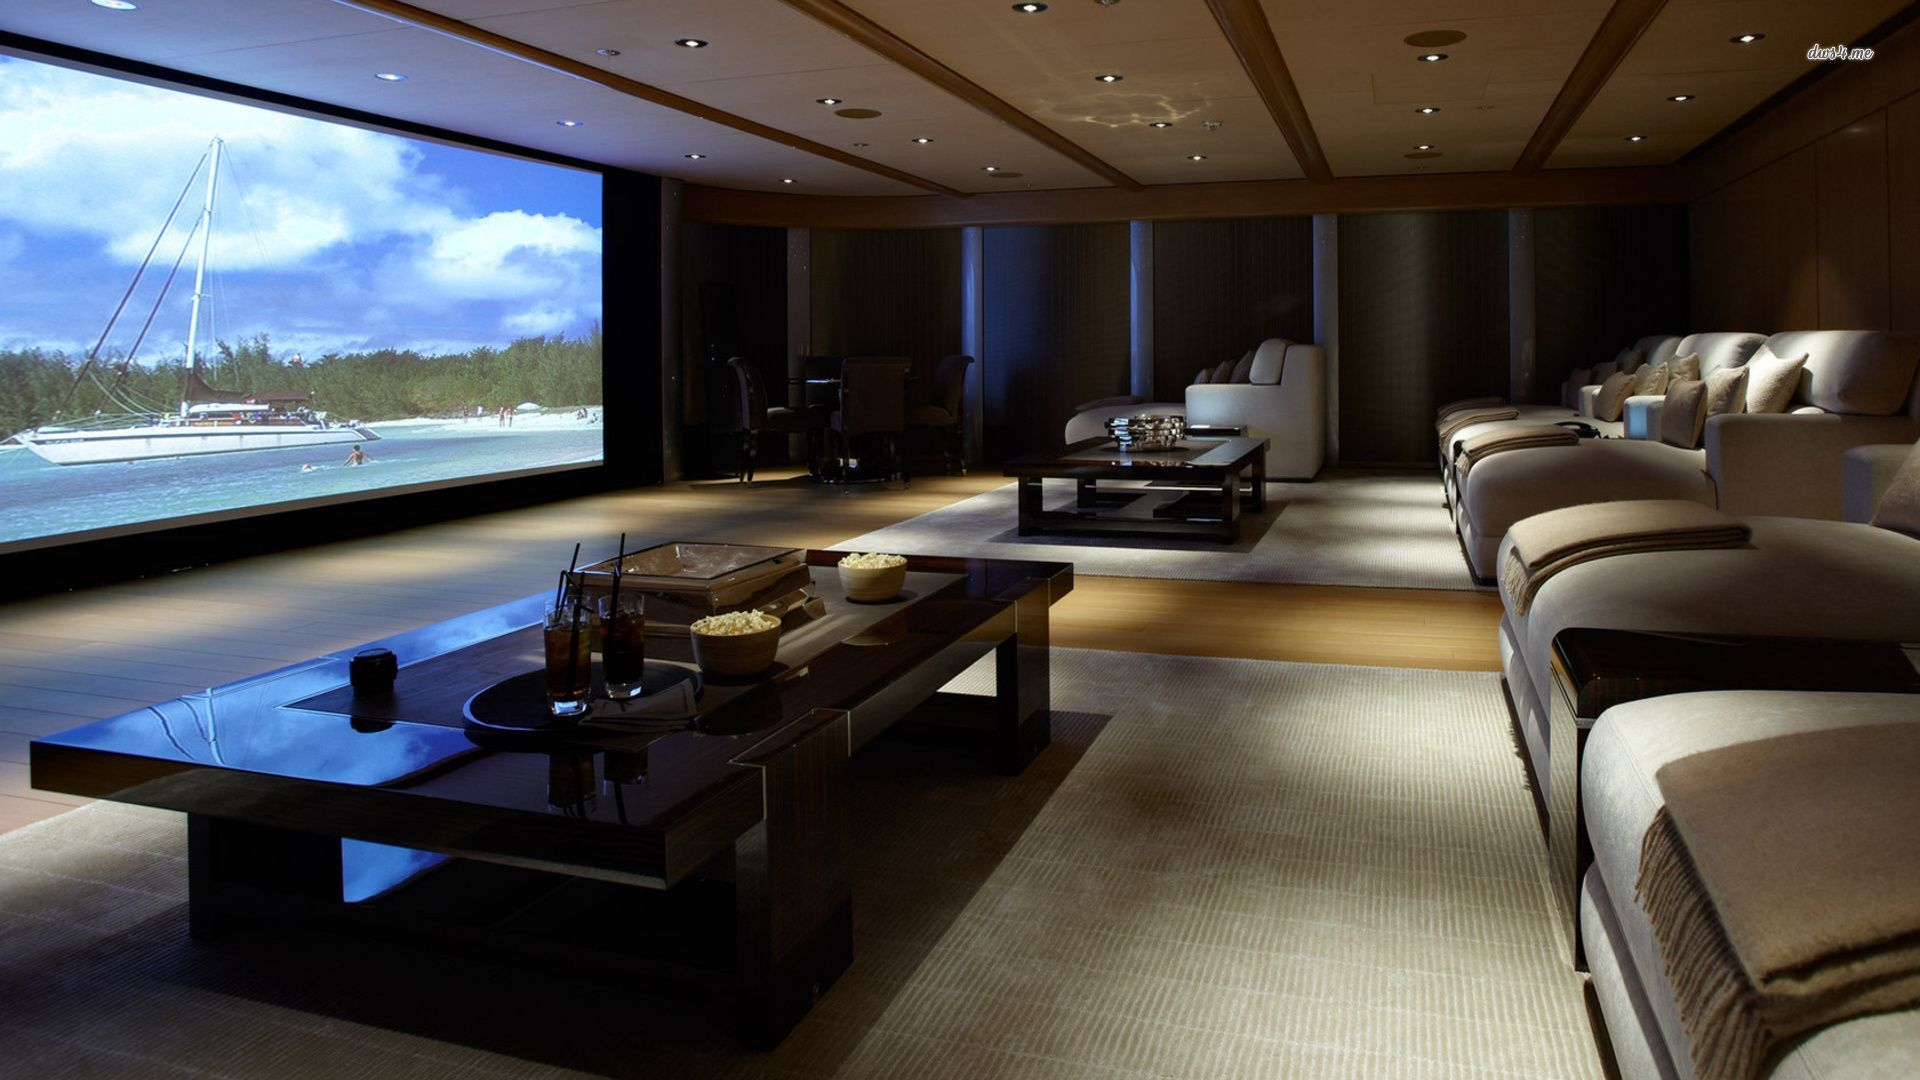 Home Theater Wallpaper for Desktop - WallpaperSafari